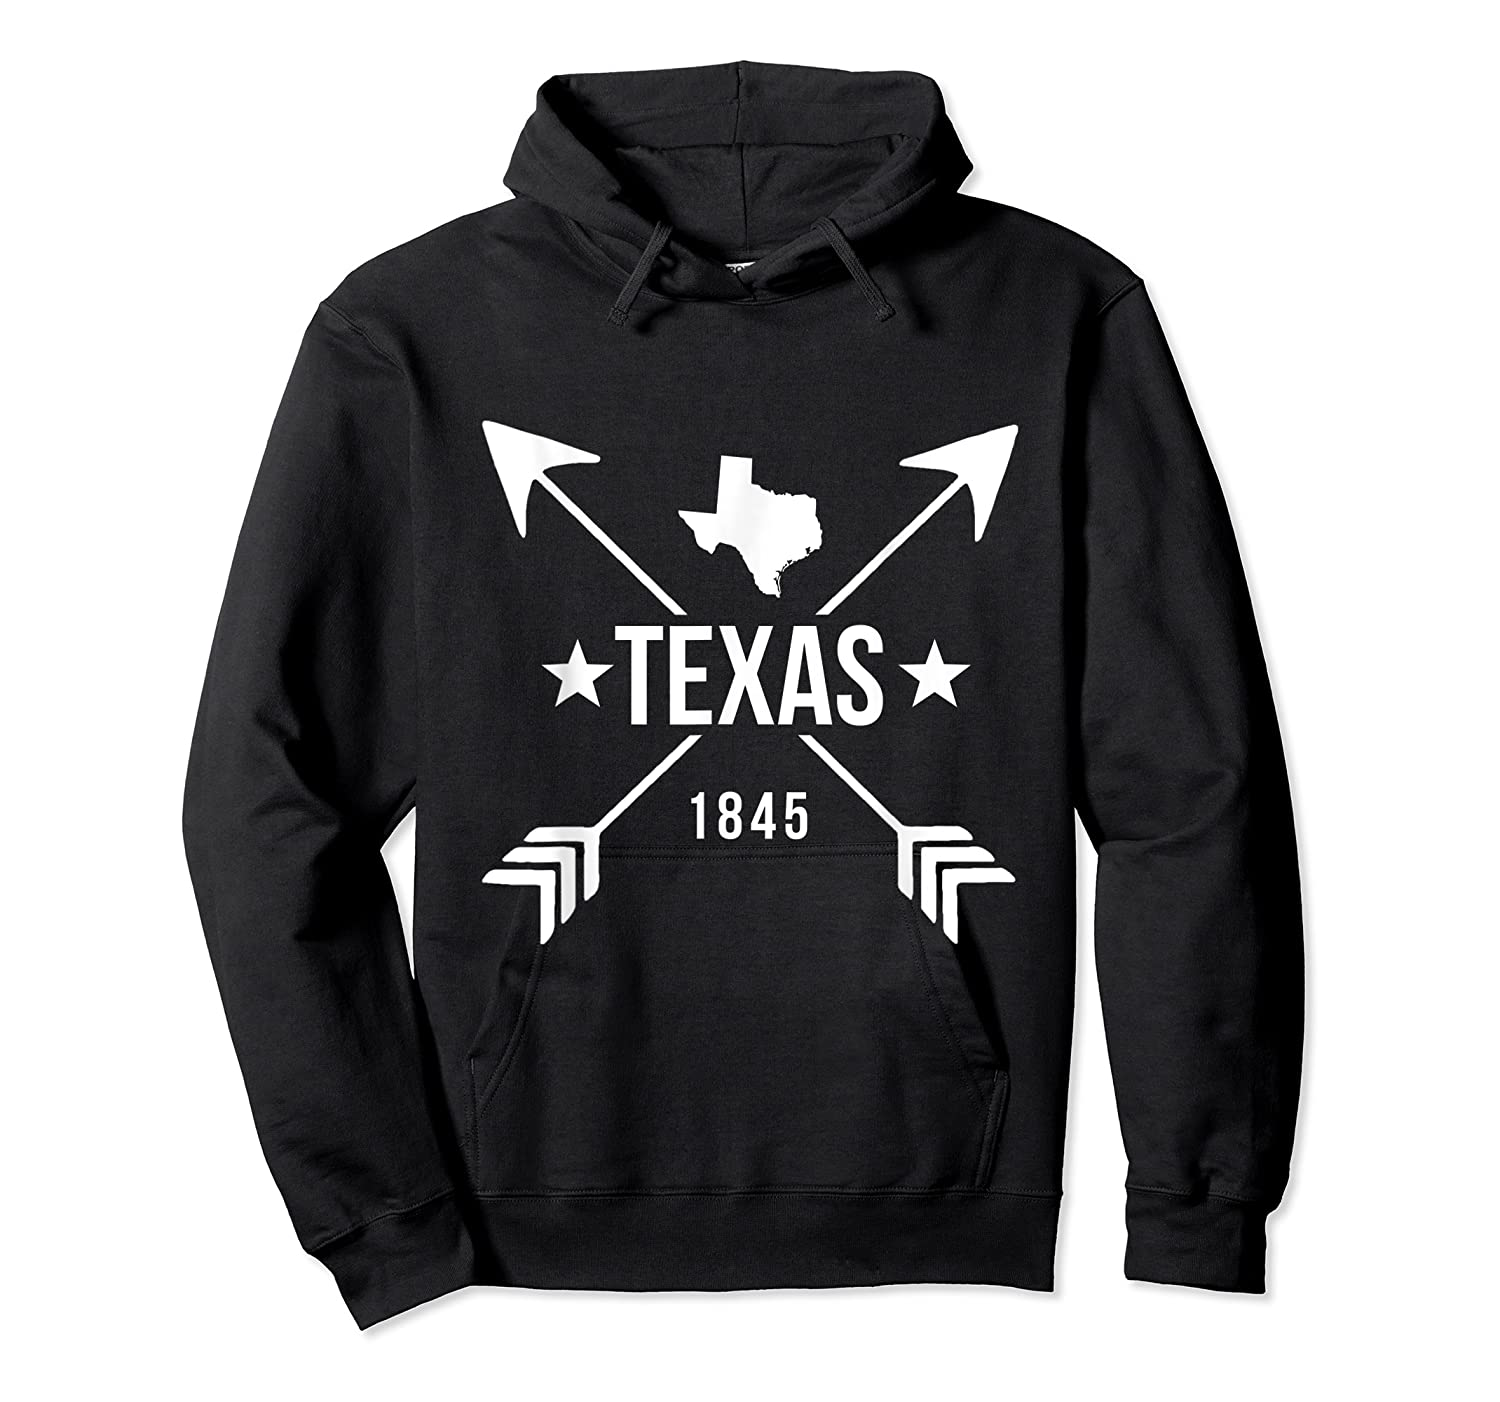 Texas 1845 Shirts Unisex Pullover Hoodie